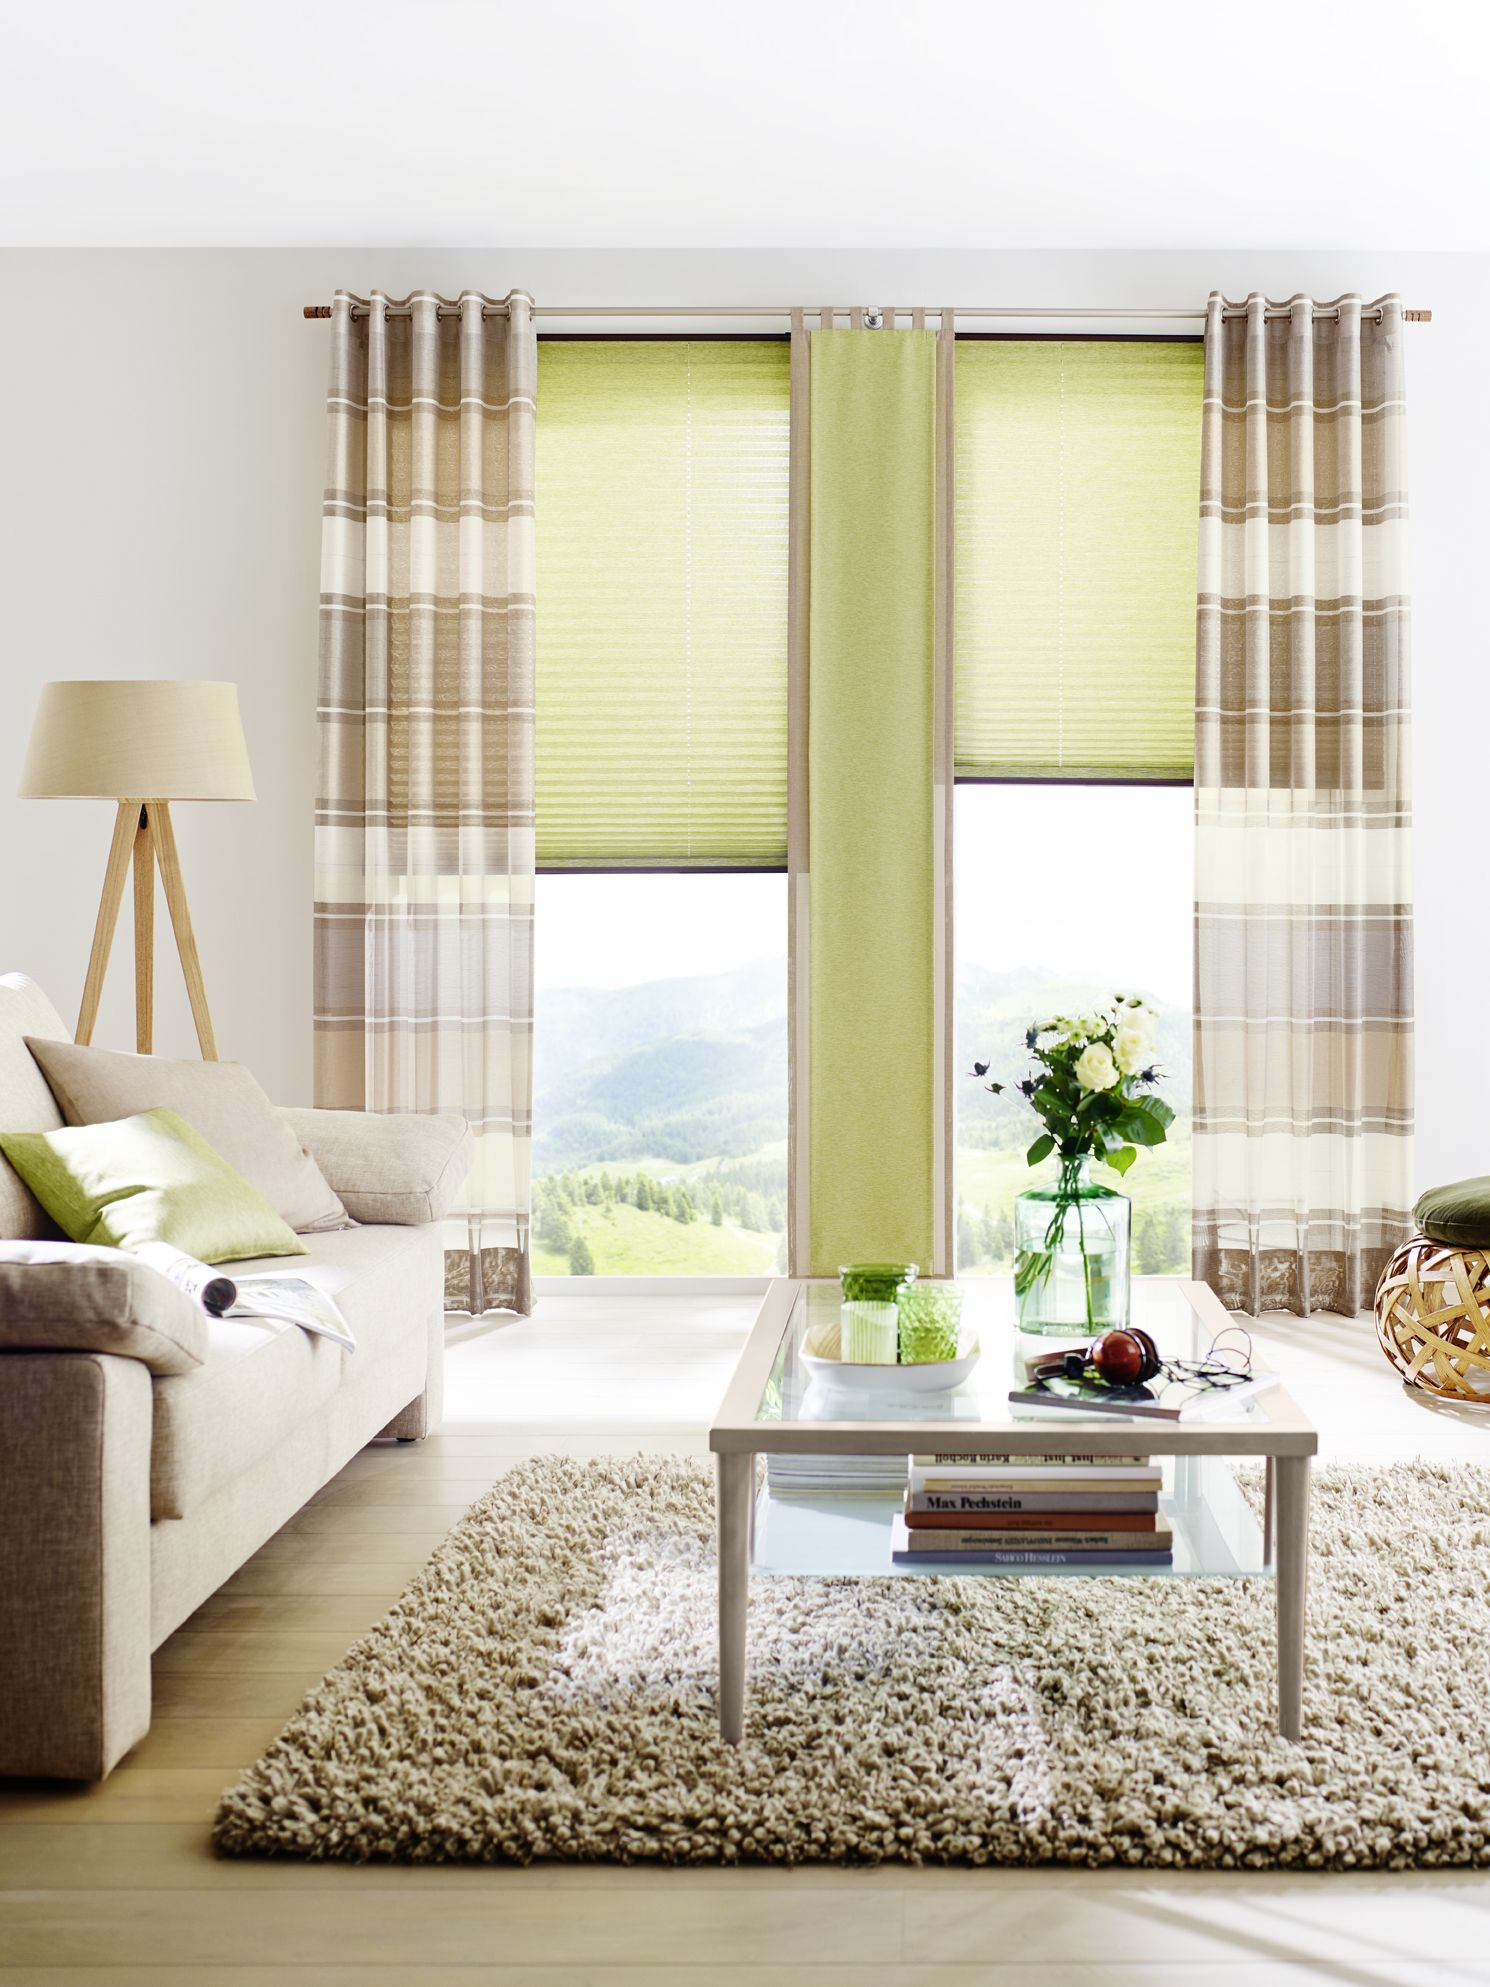 fenster rollos plissee dsc window blinds halifax from in blackout shades plissee skylight with. Black Bedroom Furniture Sets. Home Design Ideas